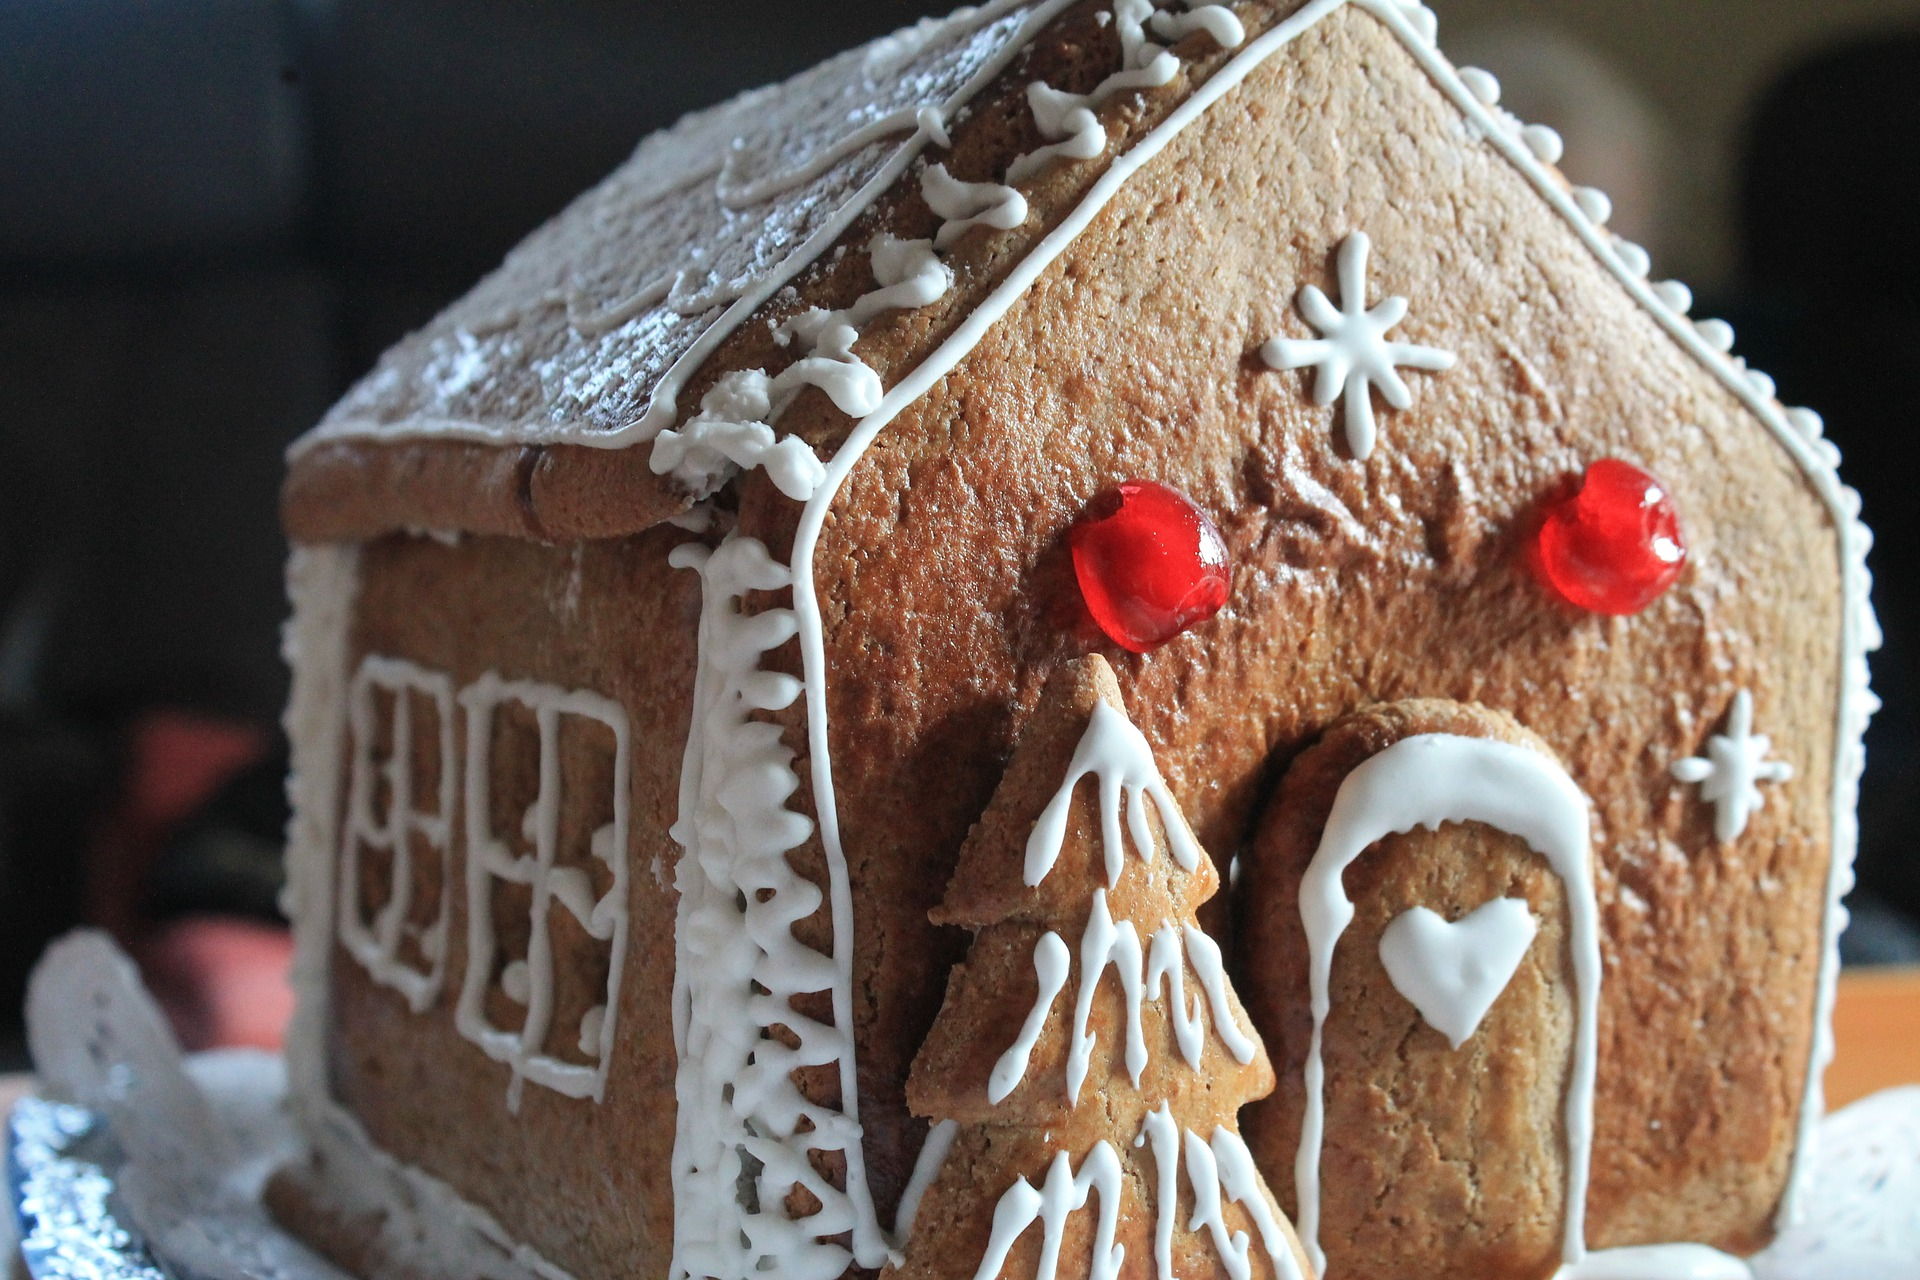 gingerbread-house-2538660_1920